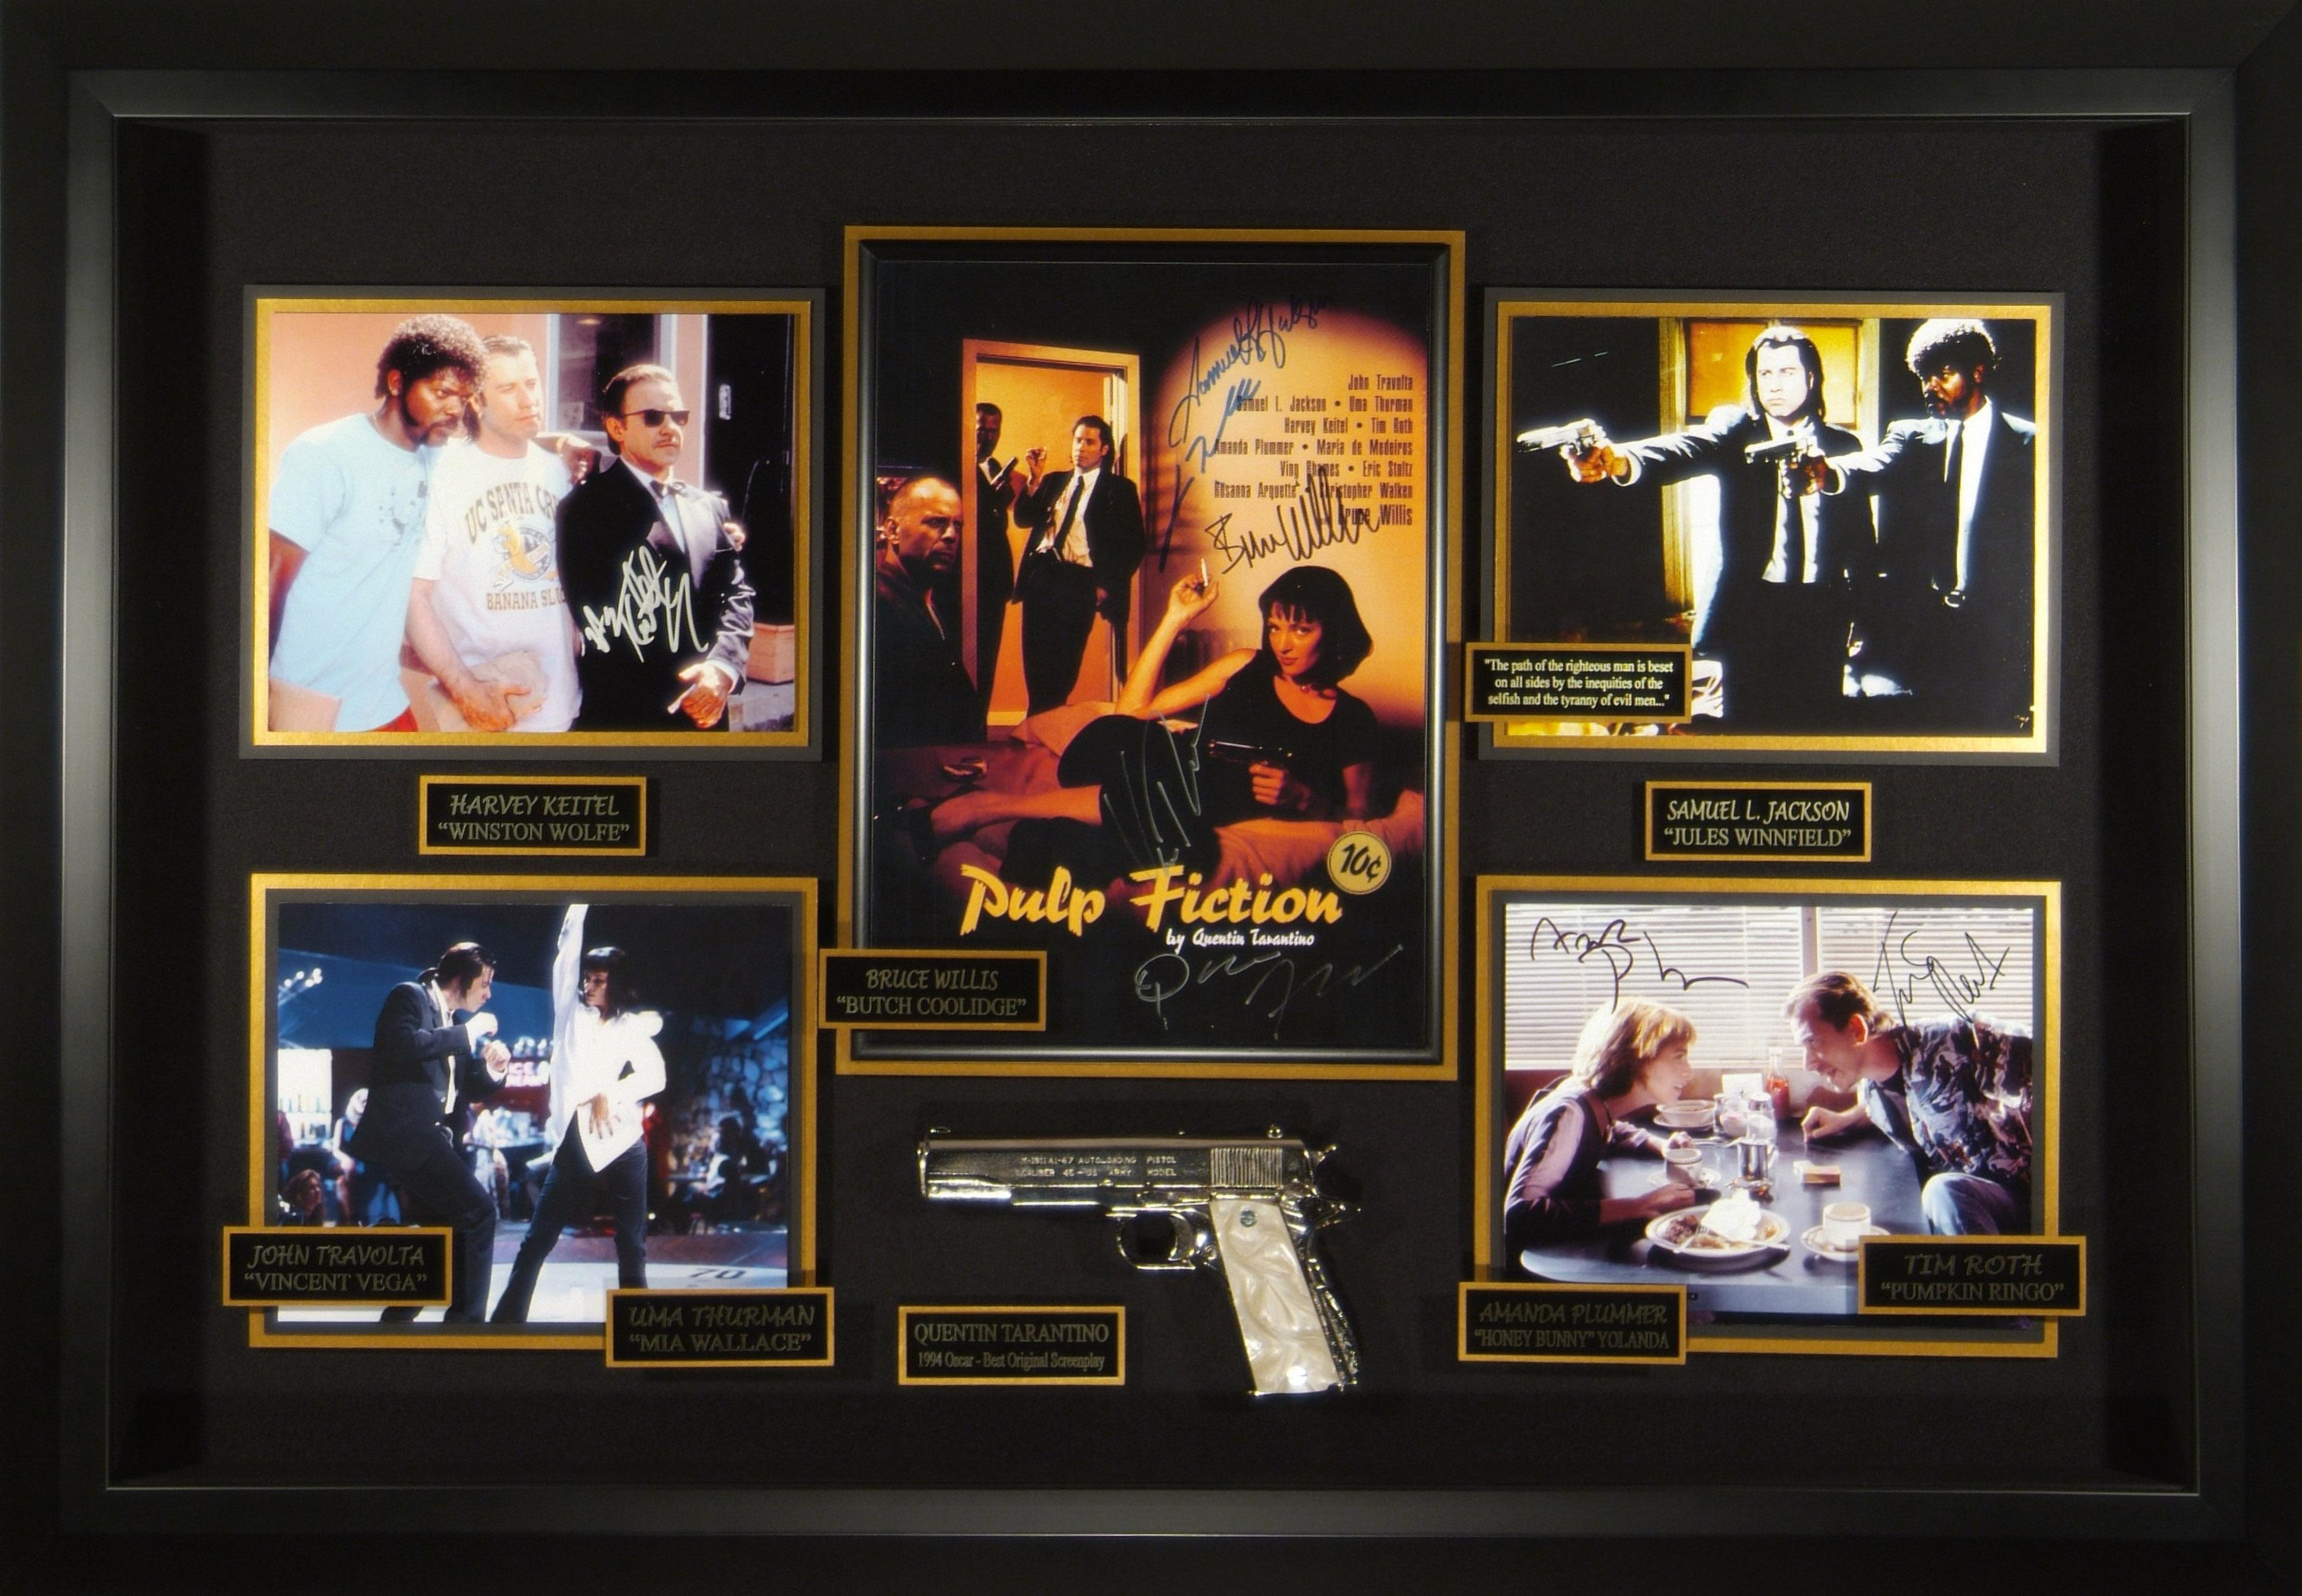 pulp fiction cast signed movie poster display